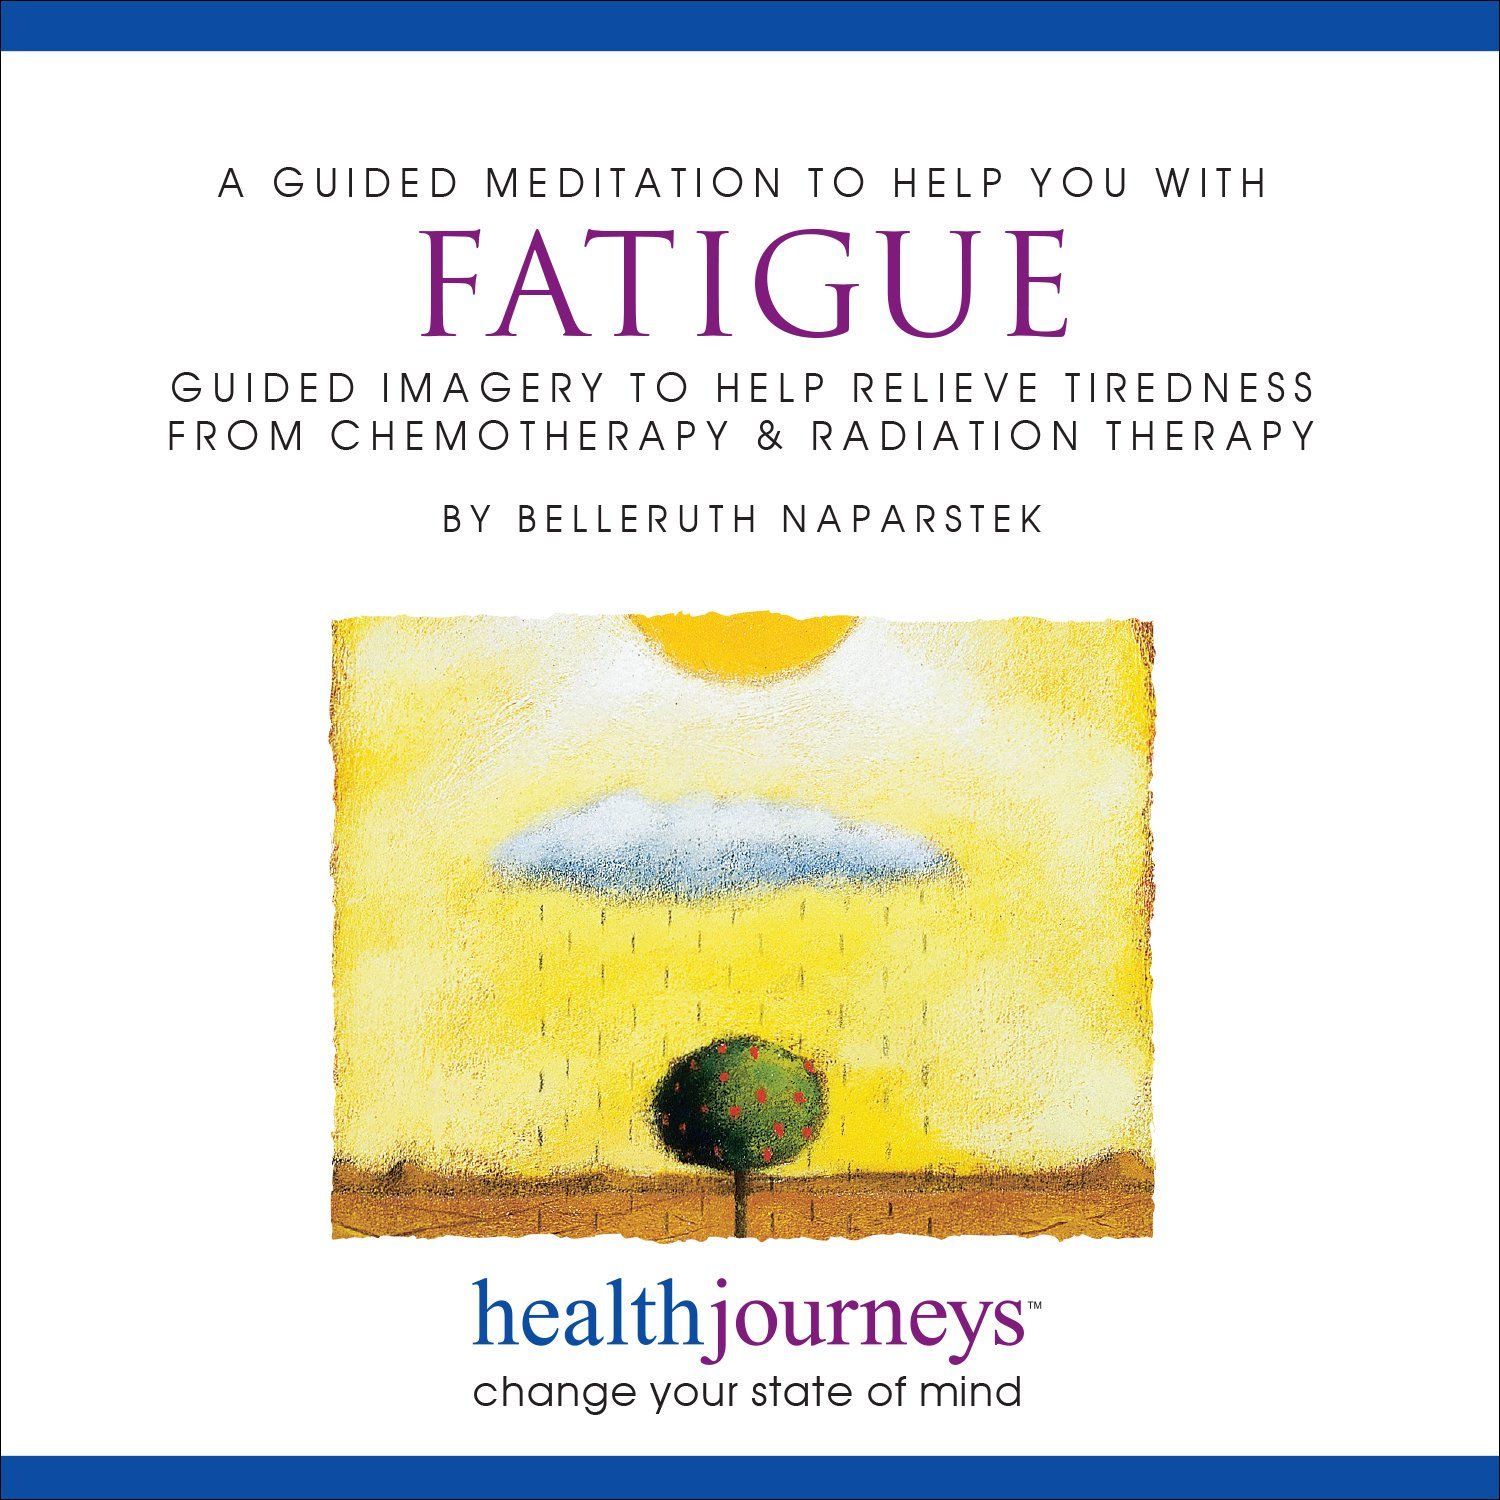 A Meditation to Help You With Fatigue: Guided Imagery to Help Relieve Tiredness From Chemotherapy and Radiation Therapy